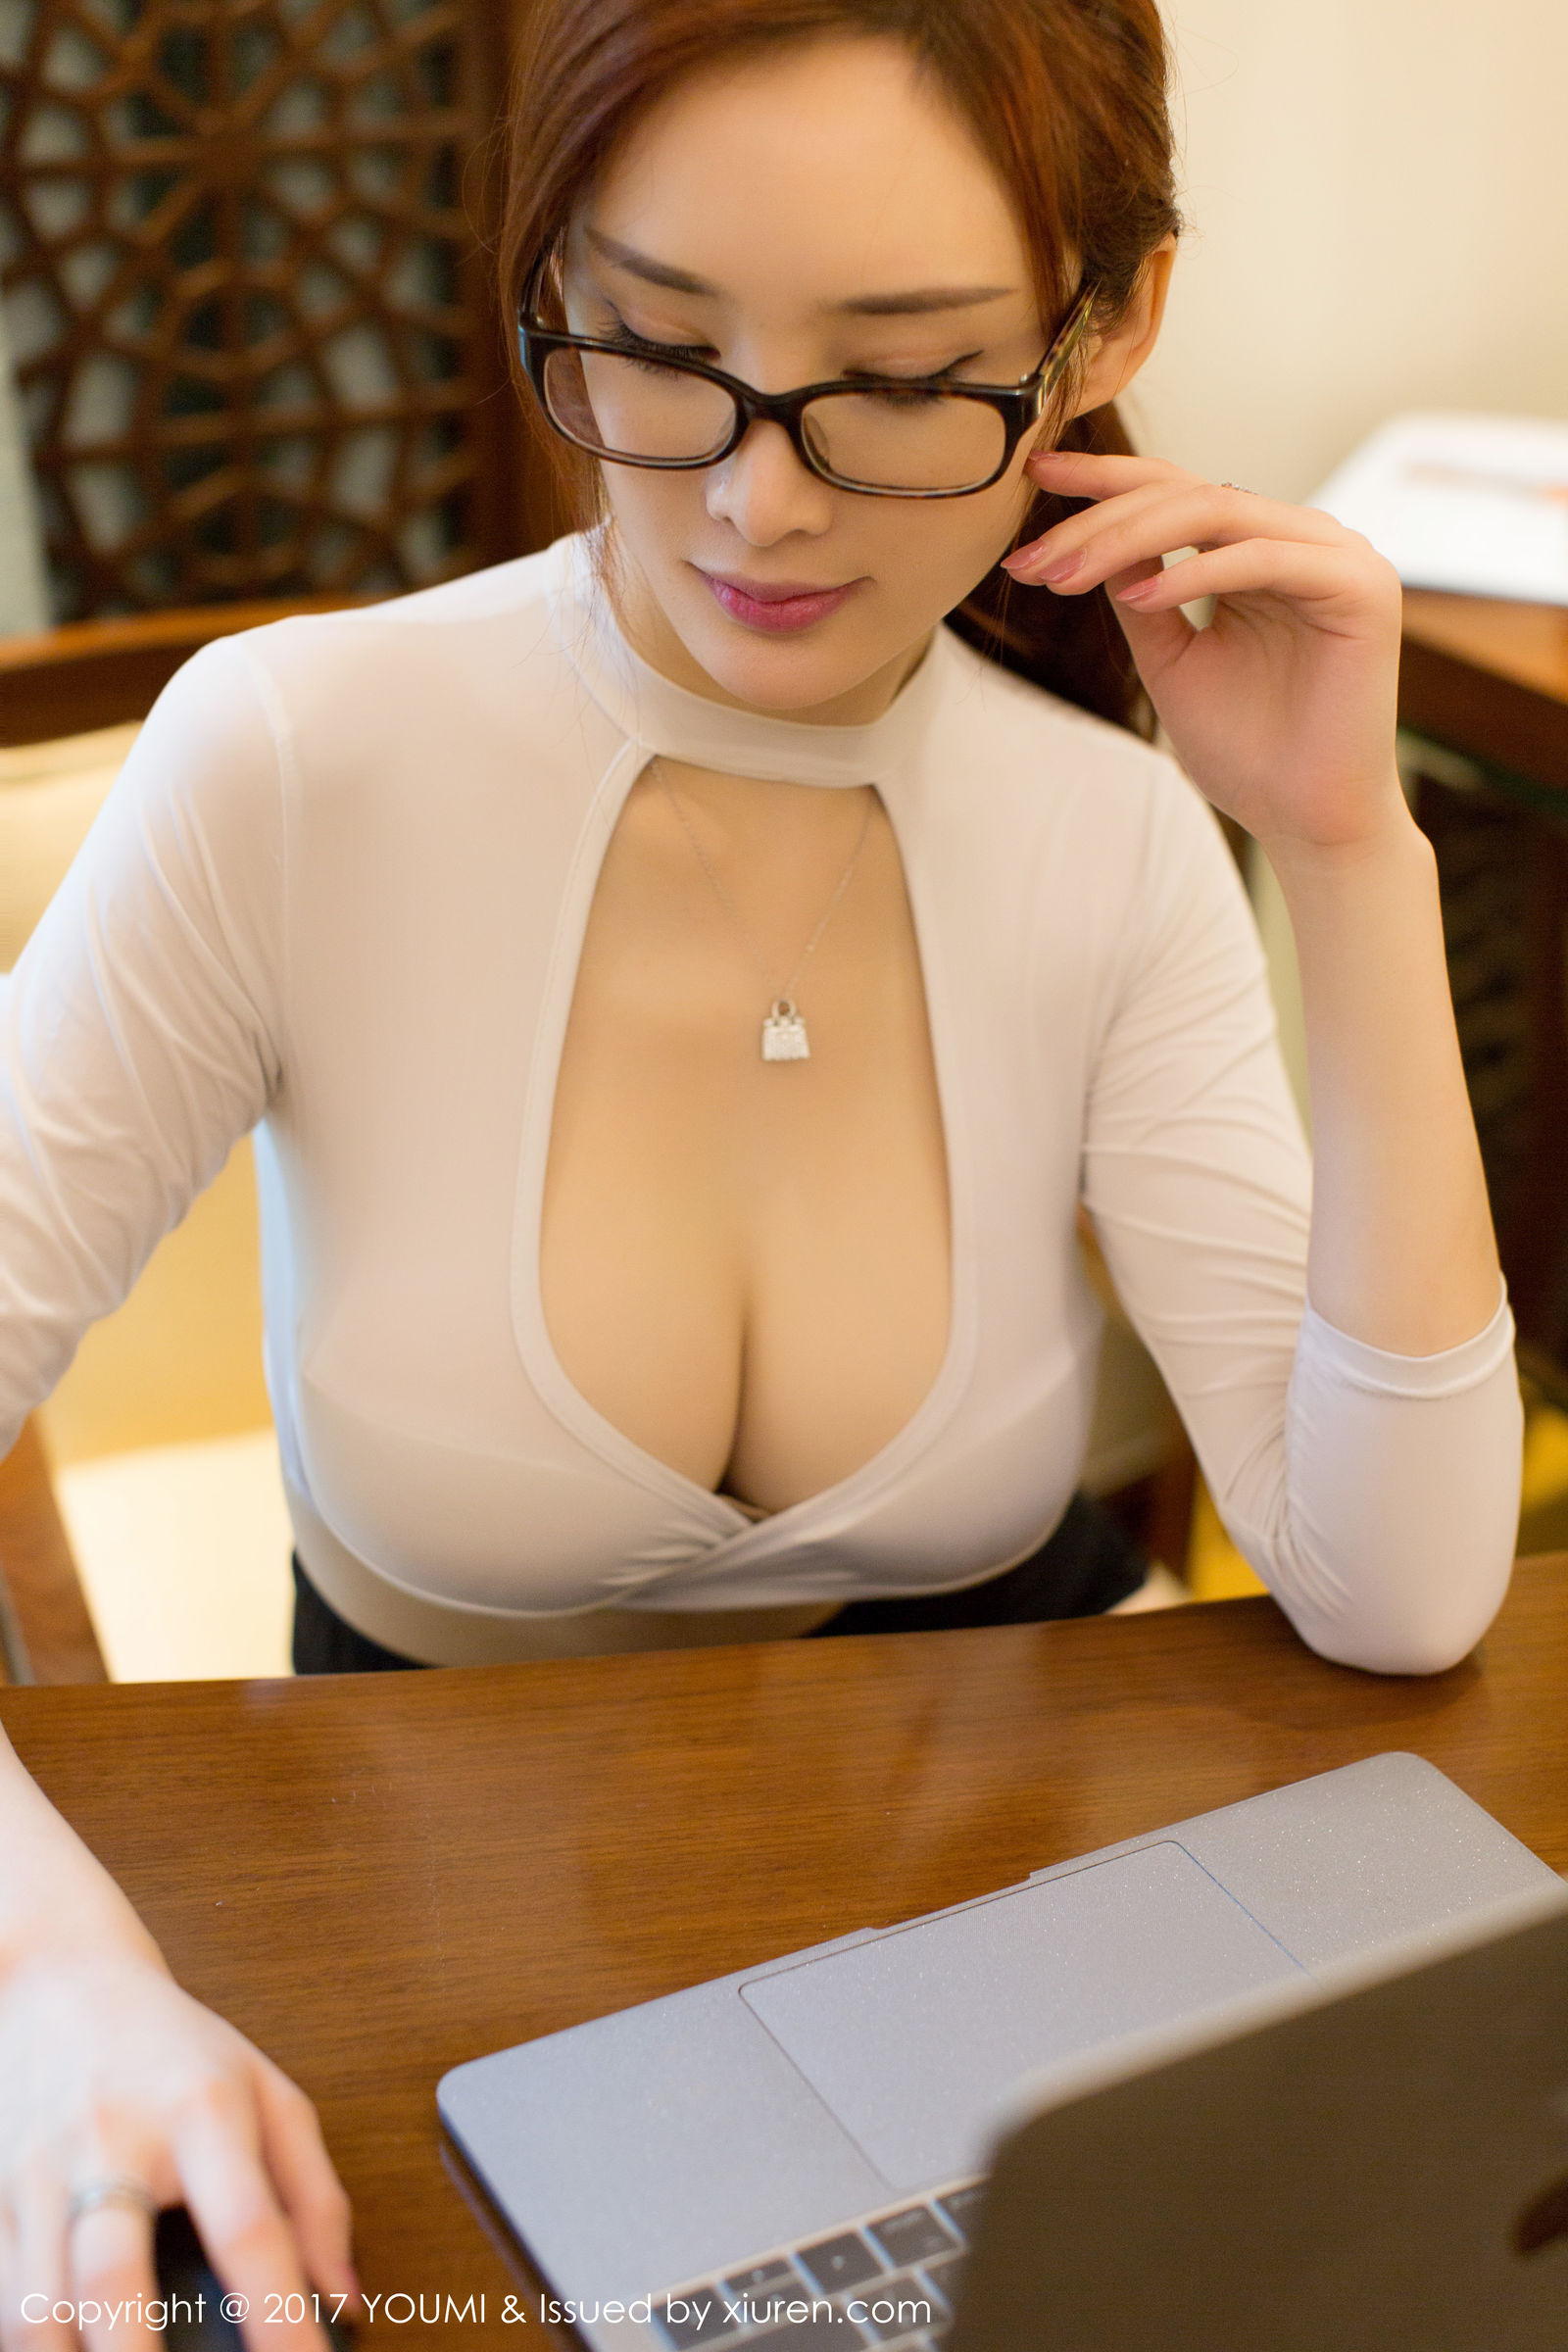 [YouMi 尤 蜜 荟] Vol.075 The soil is fat round short and frustrated-Female Secretary Uniform Temptation